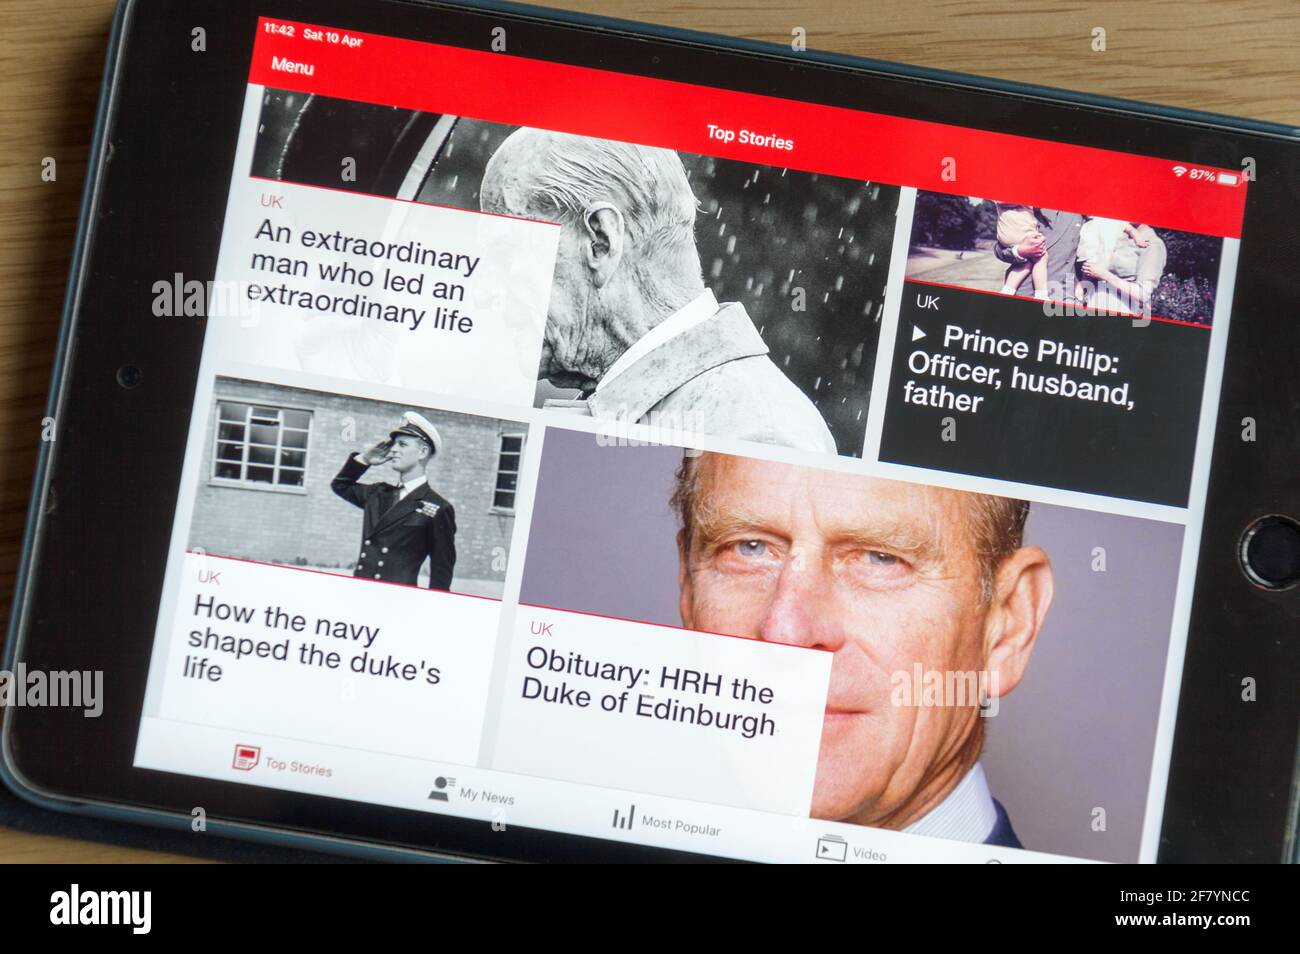 prince-philip-duke-of-edinburgh-coverage-in-bbc-news-during-his-demise-in-2021-2F7YNCC.jpg